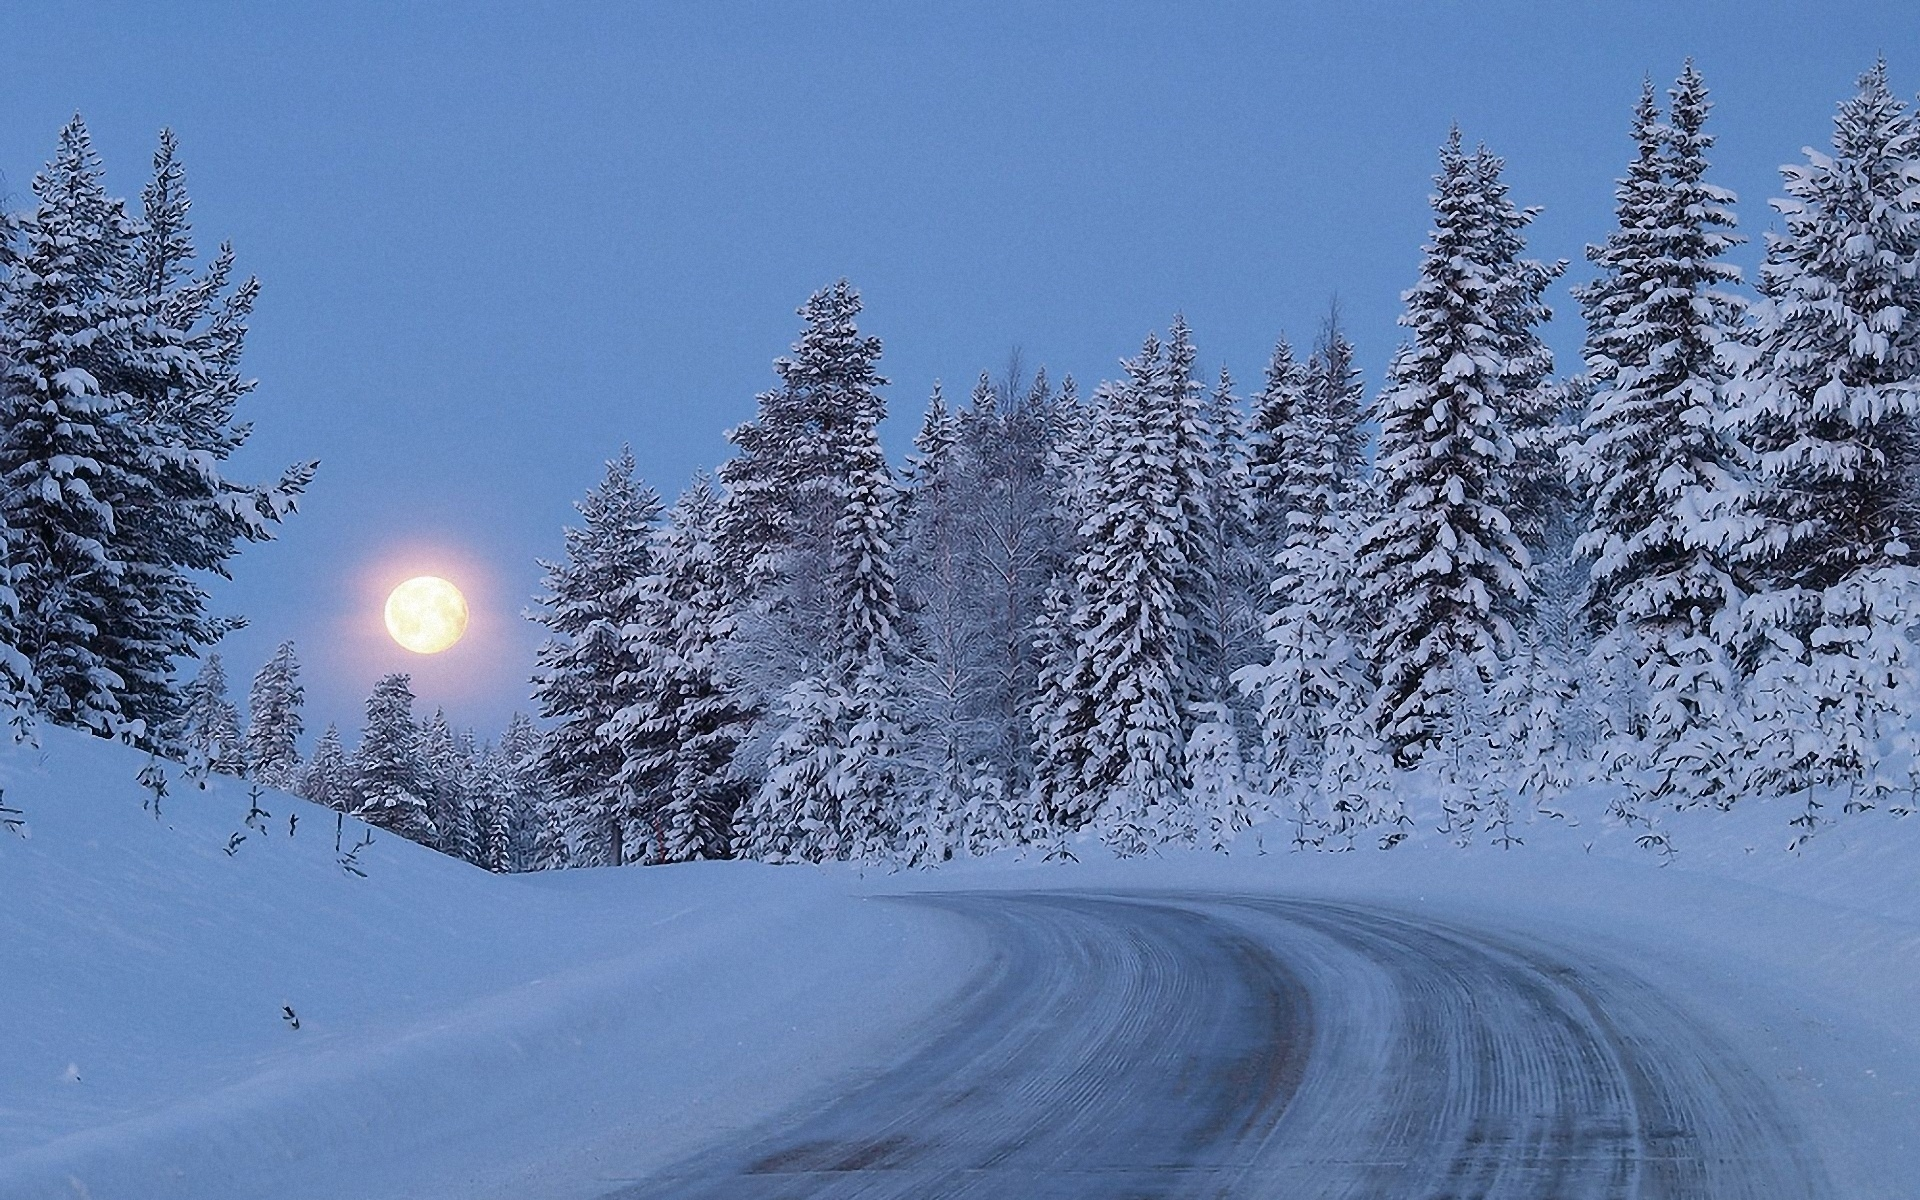 snowy forest road moon night wallpapers snowy forest